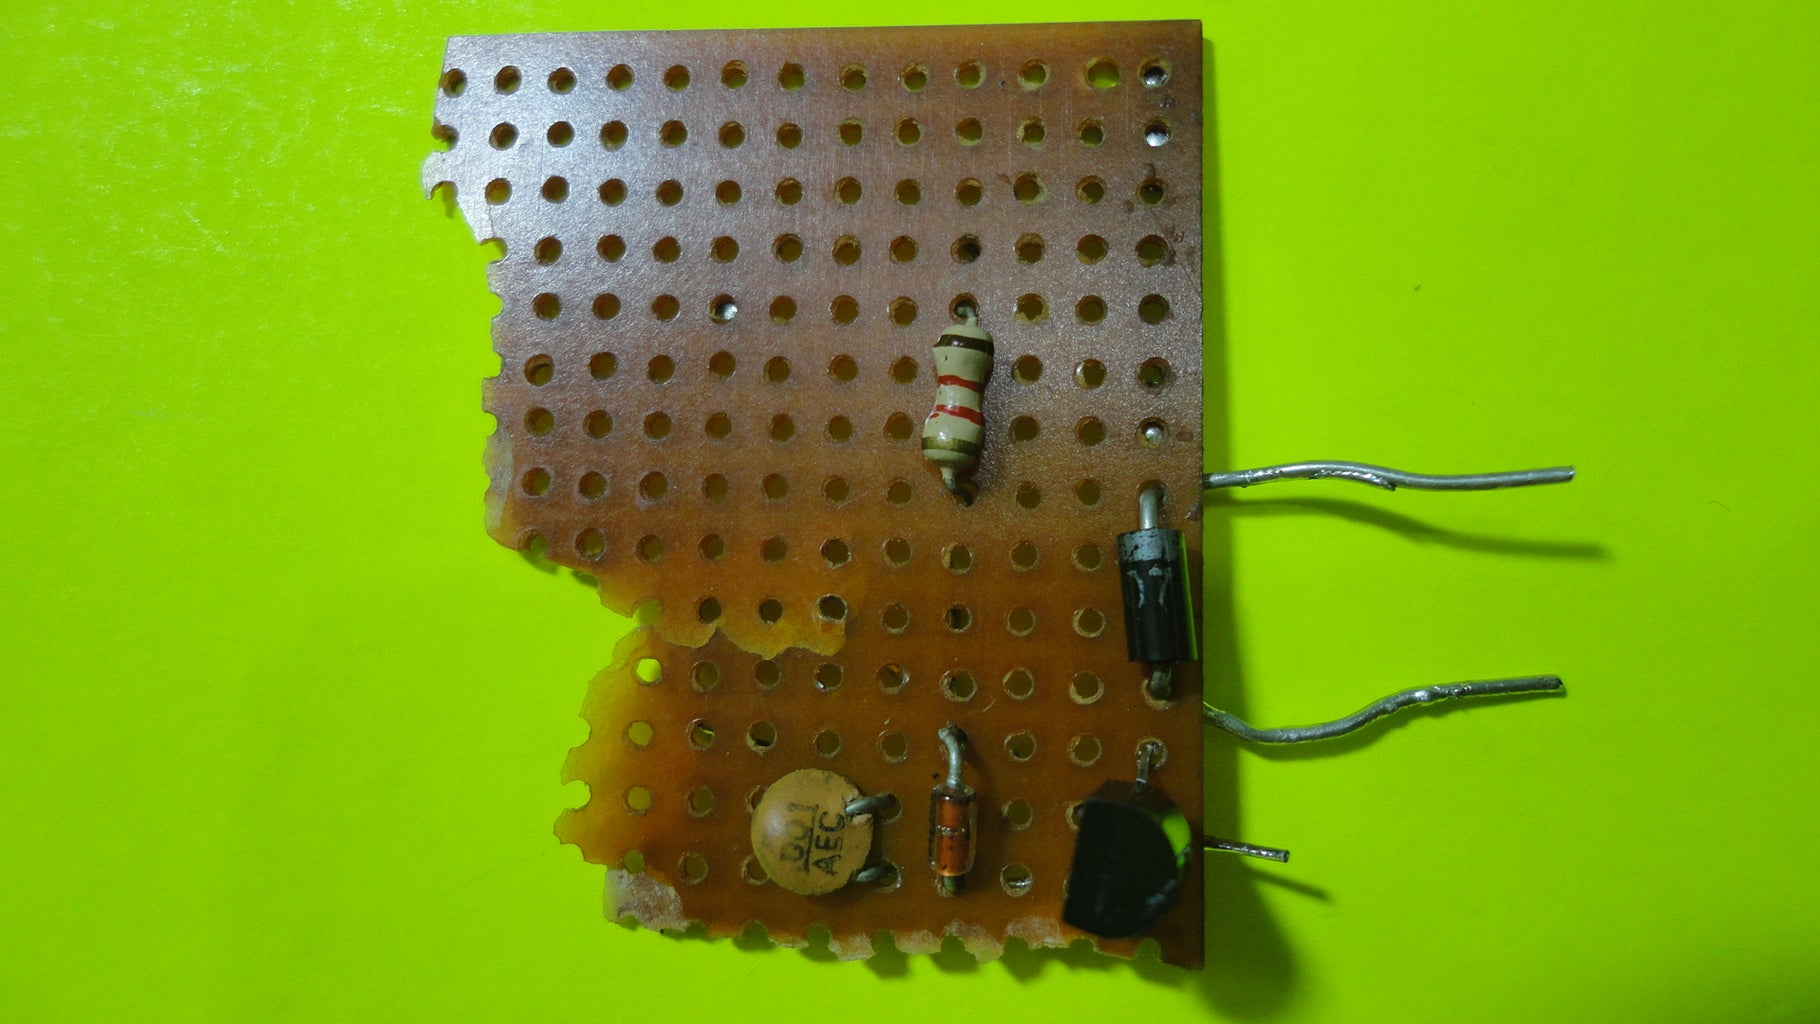 Making the Joule Thief Circuit